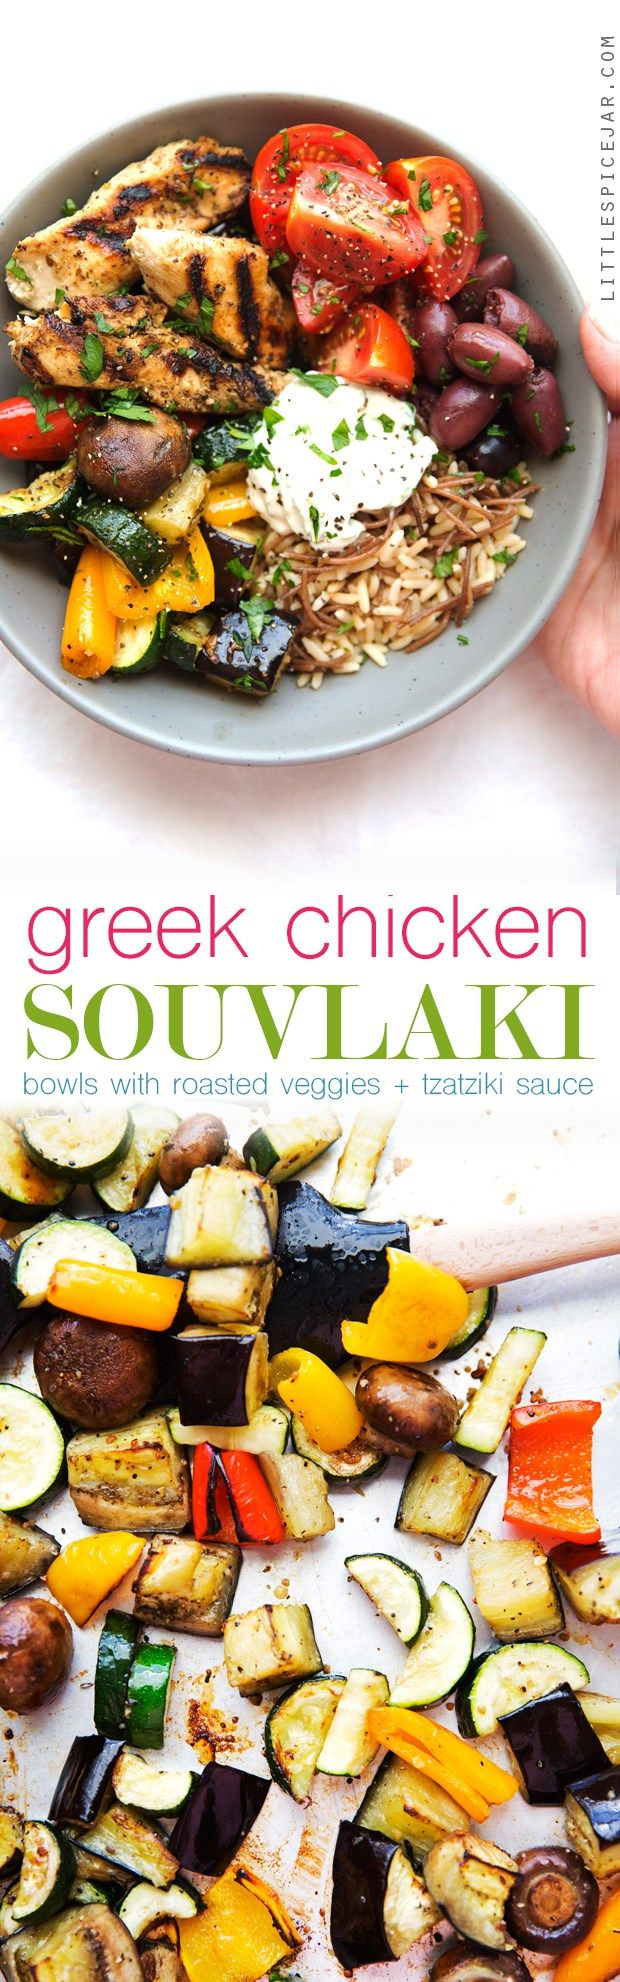 Greek Chicken Souvlaki Bowls with Roasted Veggies - A simple #mealprep meal made…